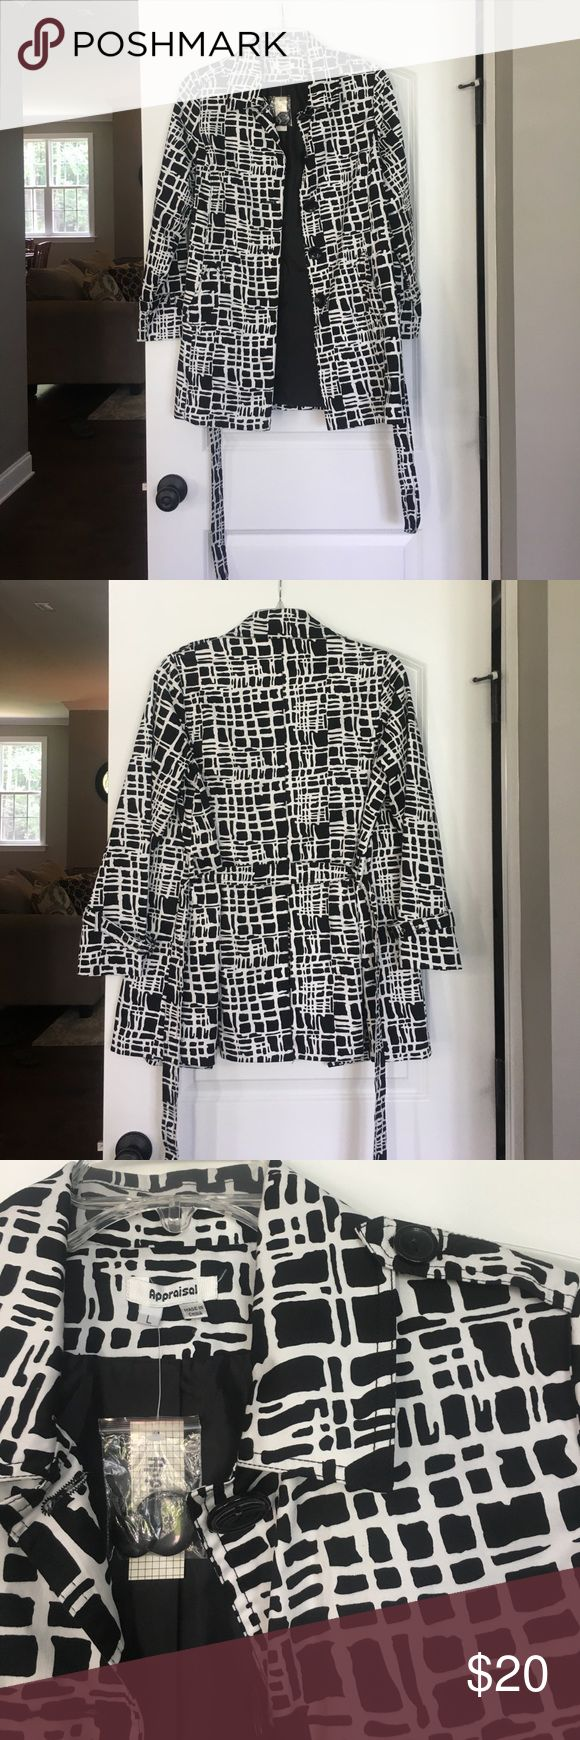 Women's black and white trench coat Super cute, black and white patterned trench coat! New with tags. Would look great in fall with jeans and boots or dress it up with heels and a dress! appraisal Jackets & Coats Trench Coats